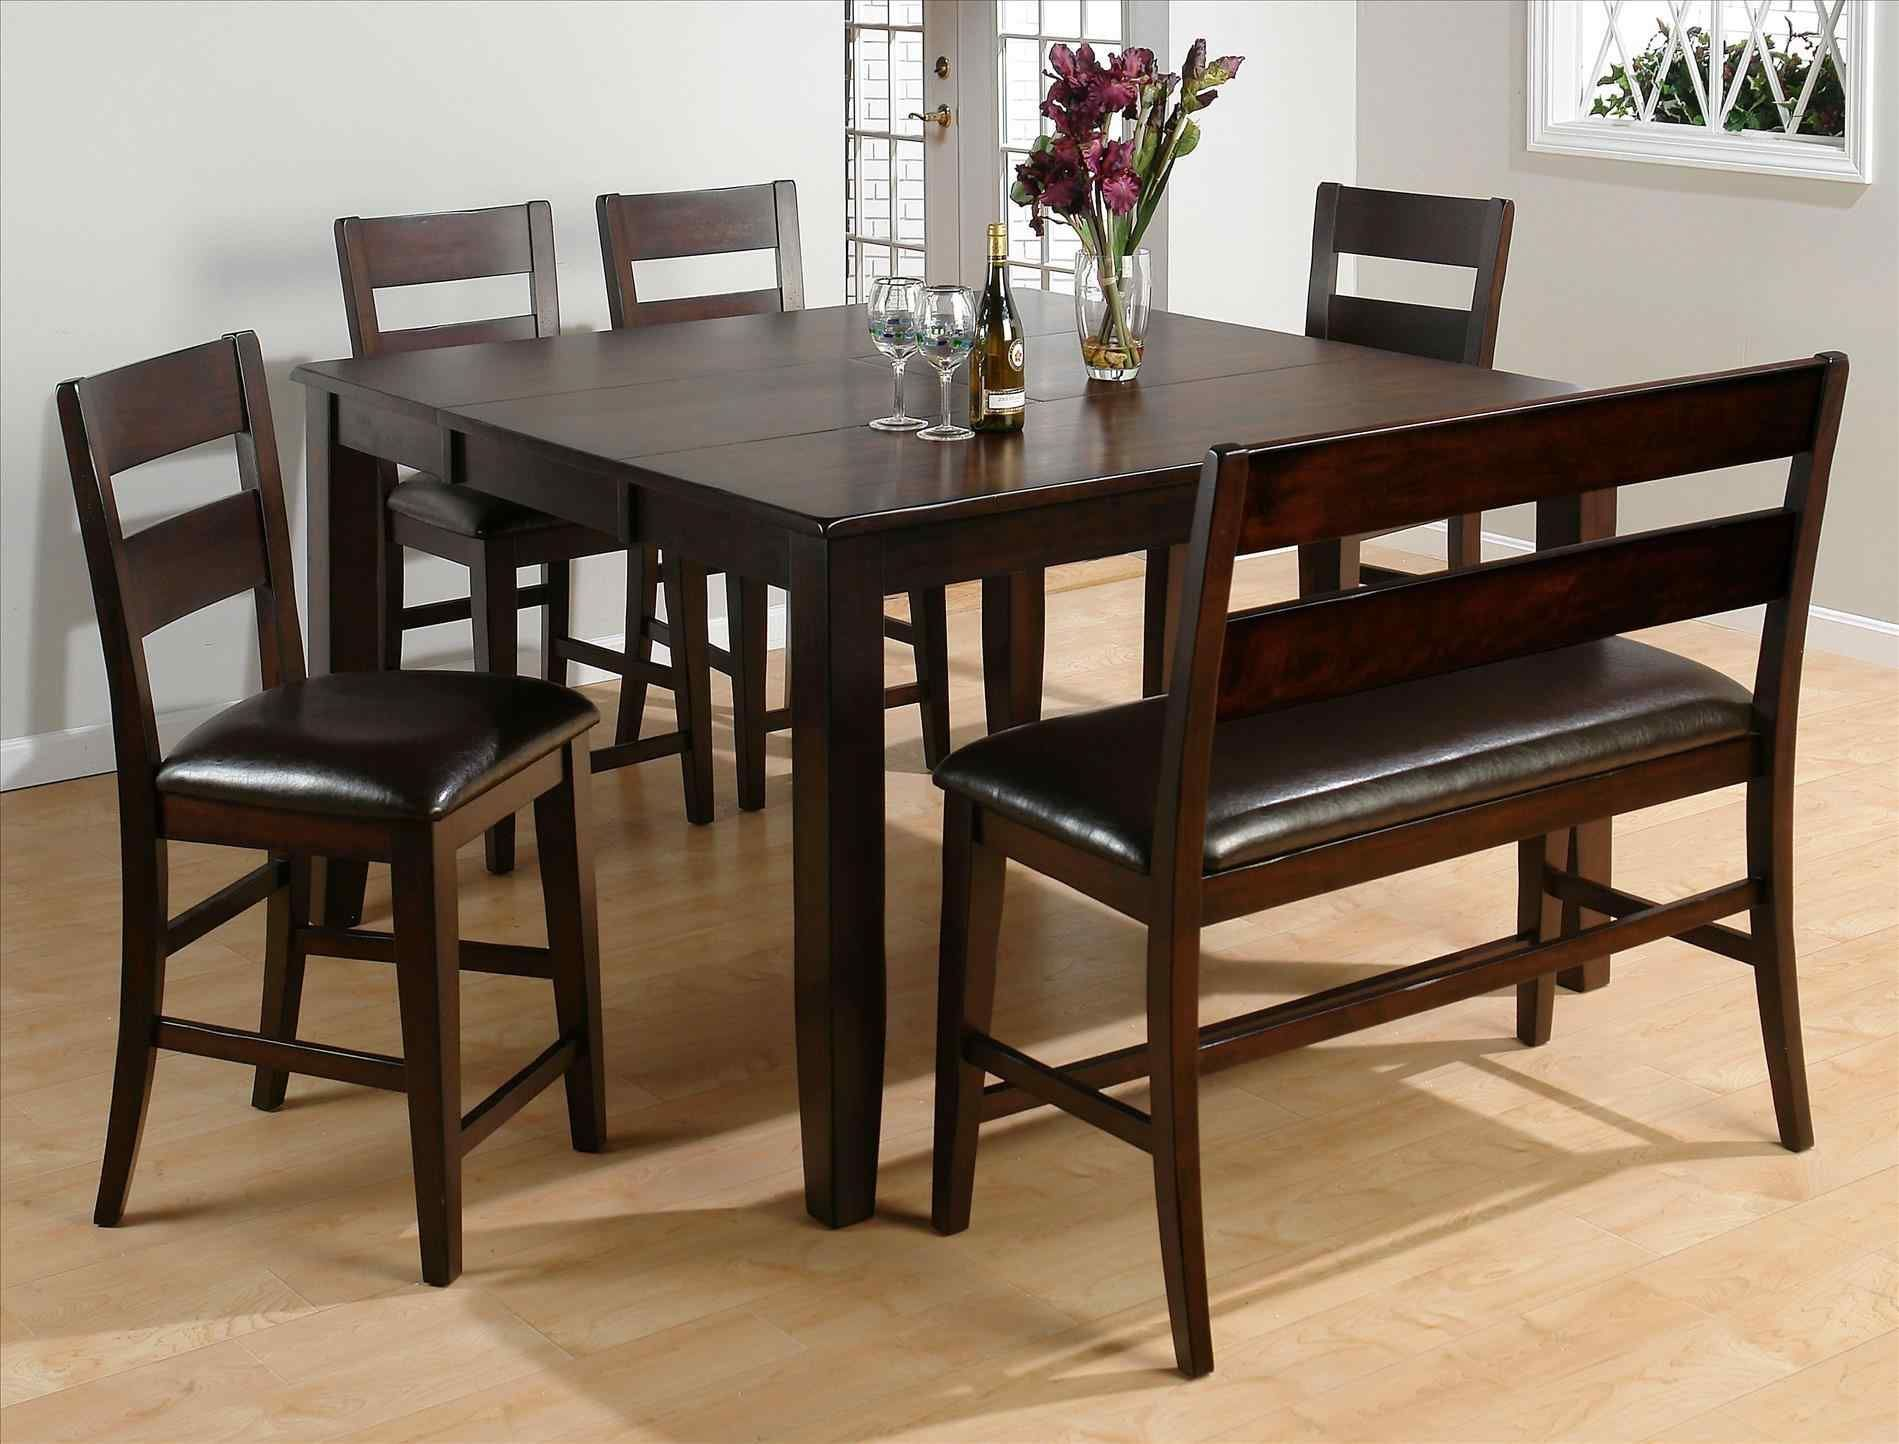 Flawless awesome 15 dining room table sets 8 chairs for your kitchen https